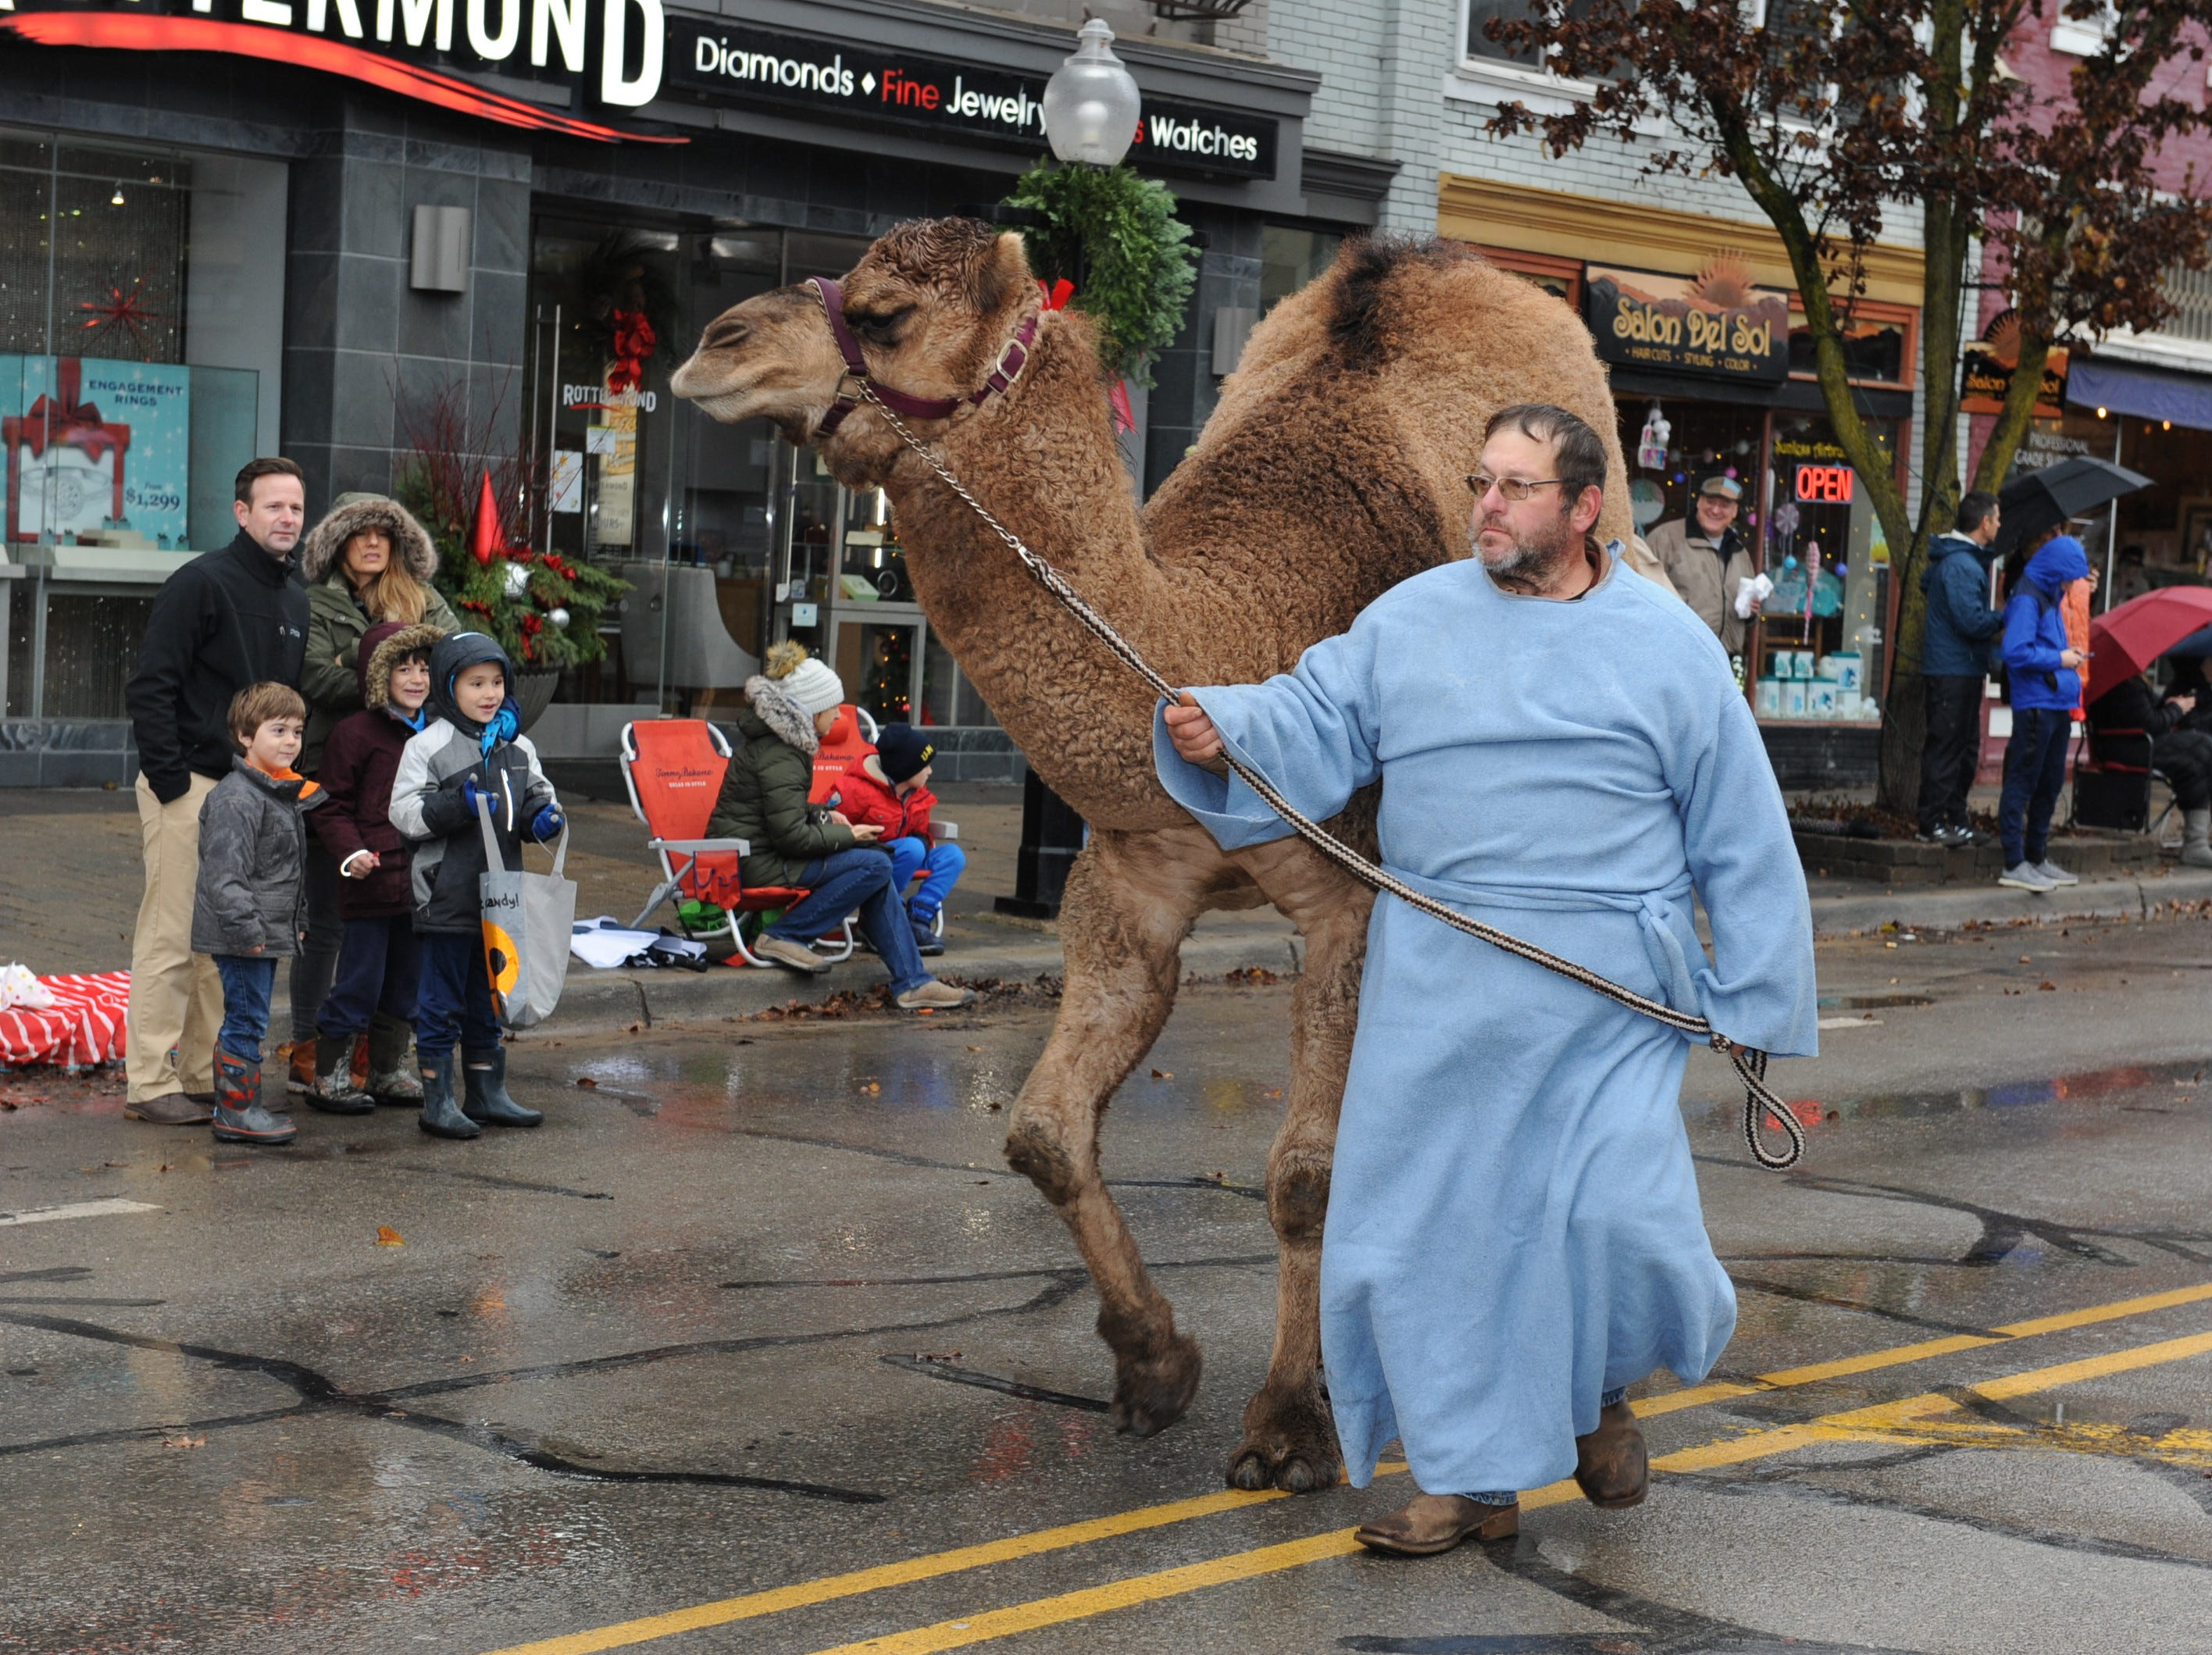 A Christ Lutheran Church member shows off his camel during the annual Milford Christmas parade.